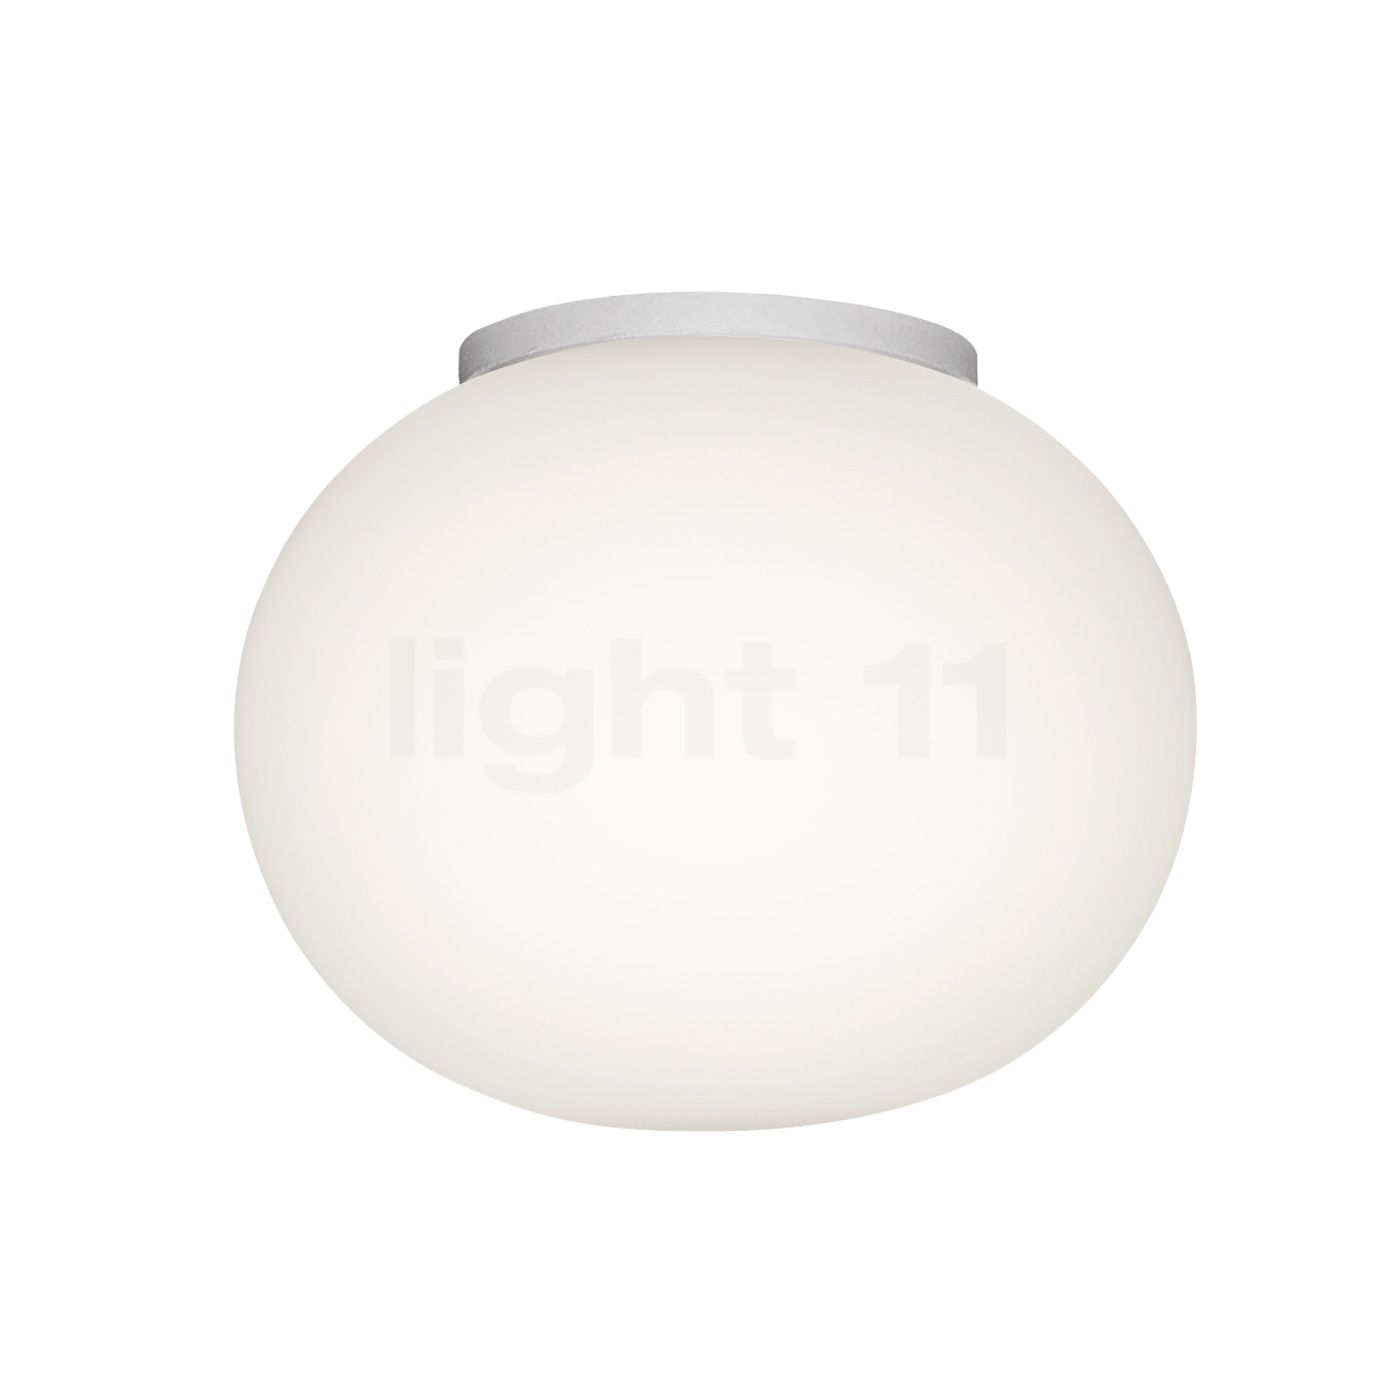 flos glo ball c w zero wall lights buy at. Black Bedroom Furniture Sets. Home Design Ideas